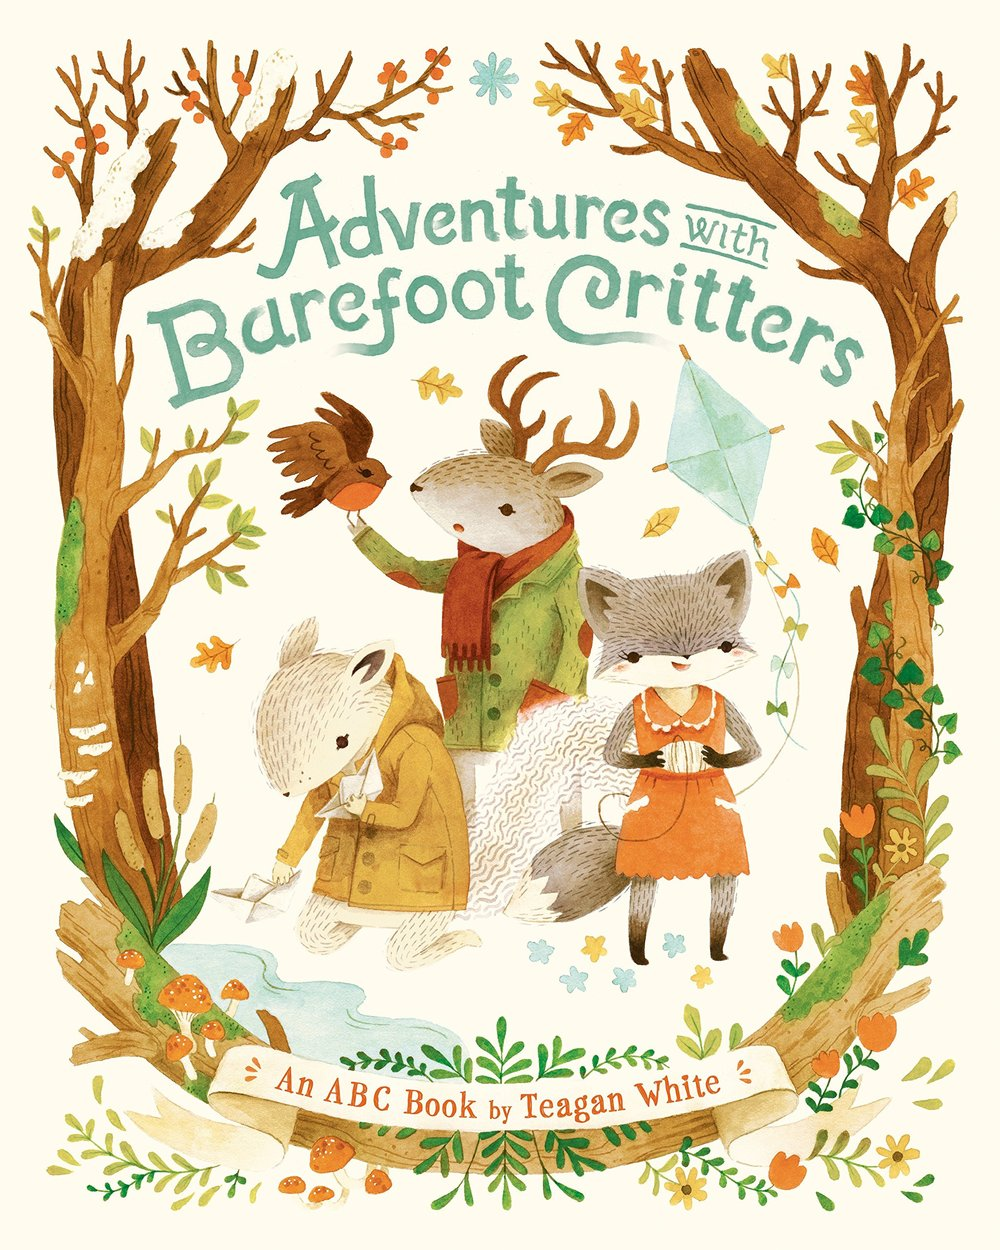 Adventures with Barefoot Critters - One of my favorite children's illustrators wrote and illustrated this book and it is one of the sweetest books you'll ever lay eyes on.